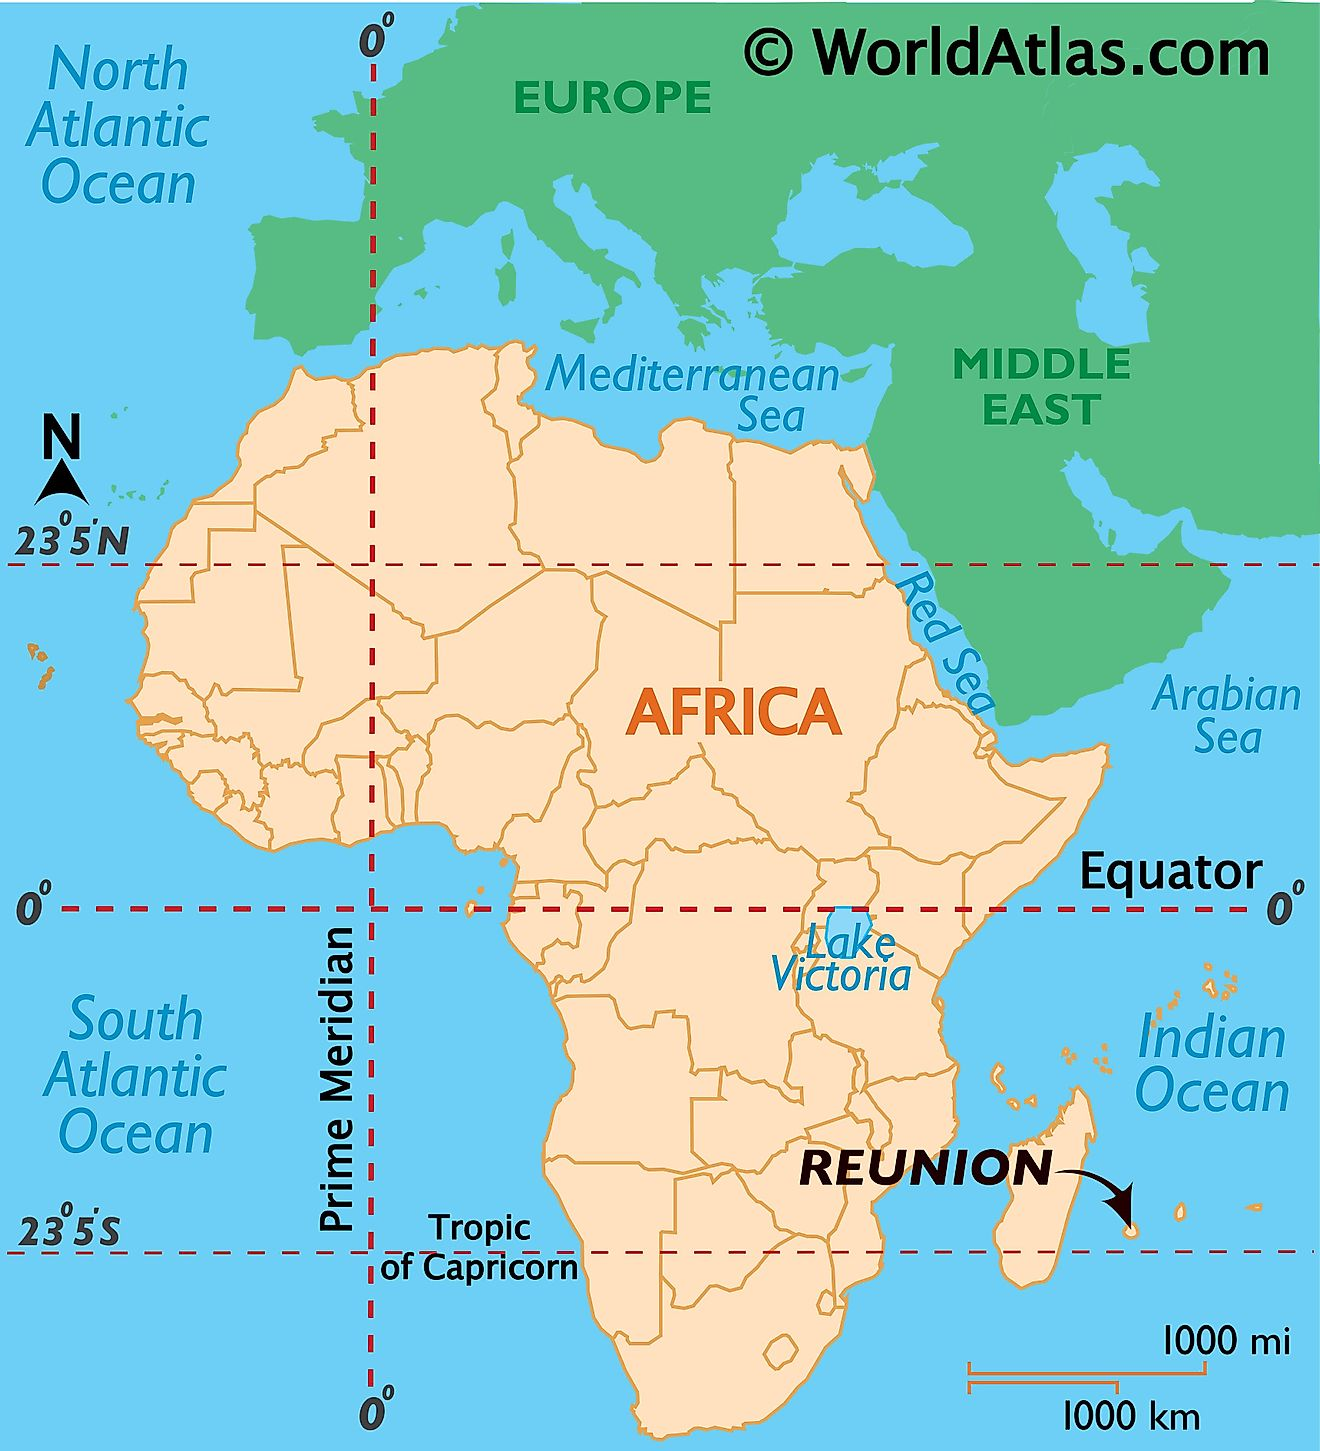 Map showing location of Reunion in the world.